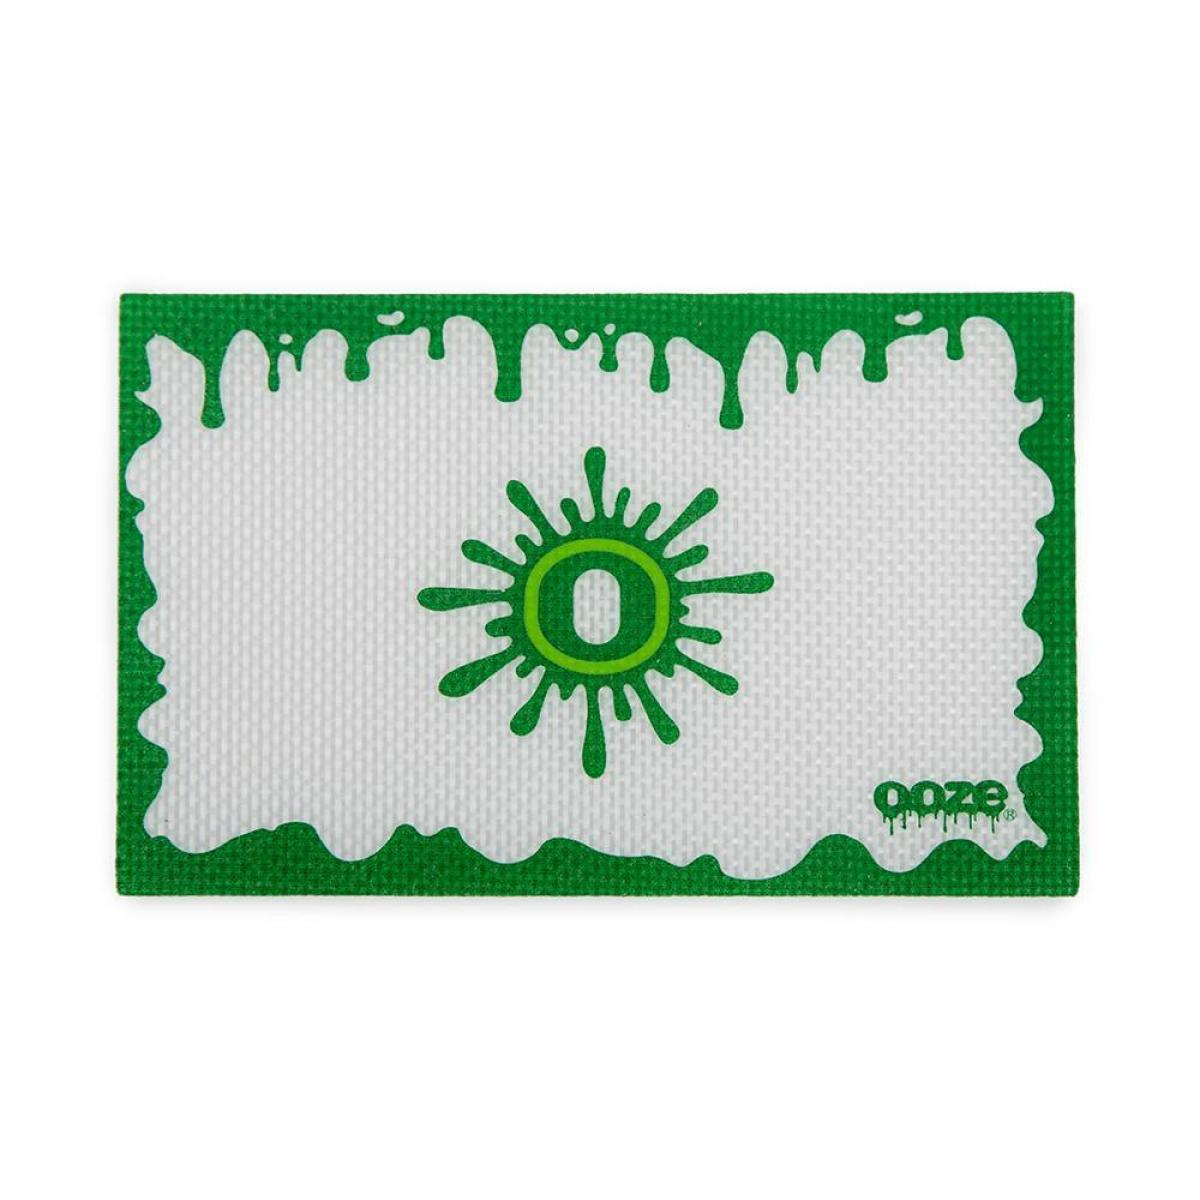 Ooze Silicone Dab Mat Small - 4 x 6